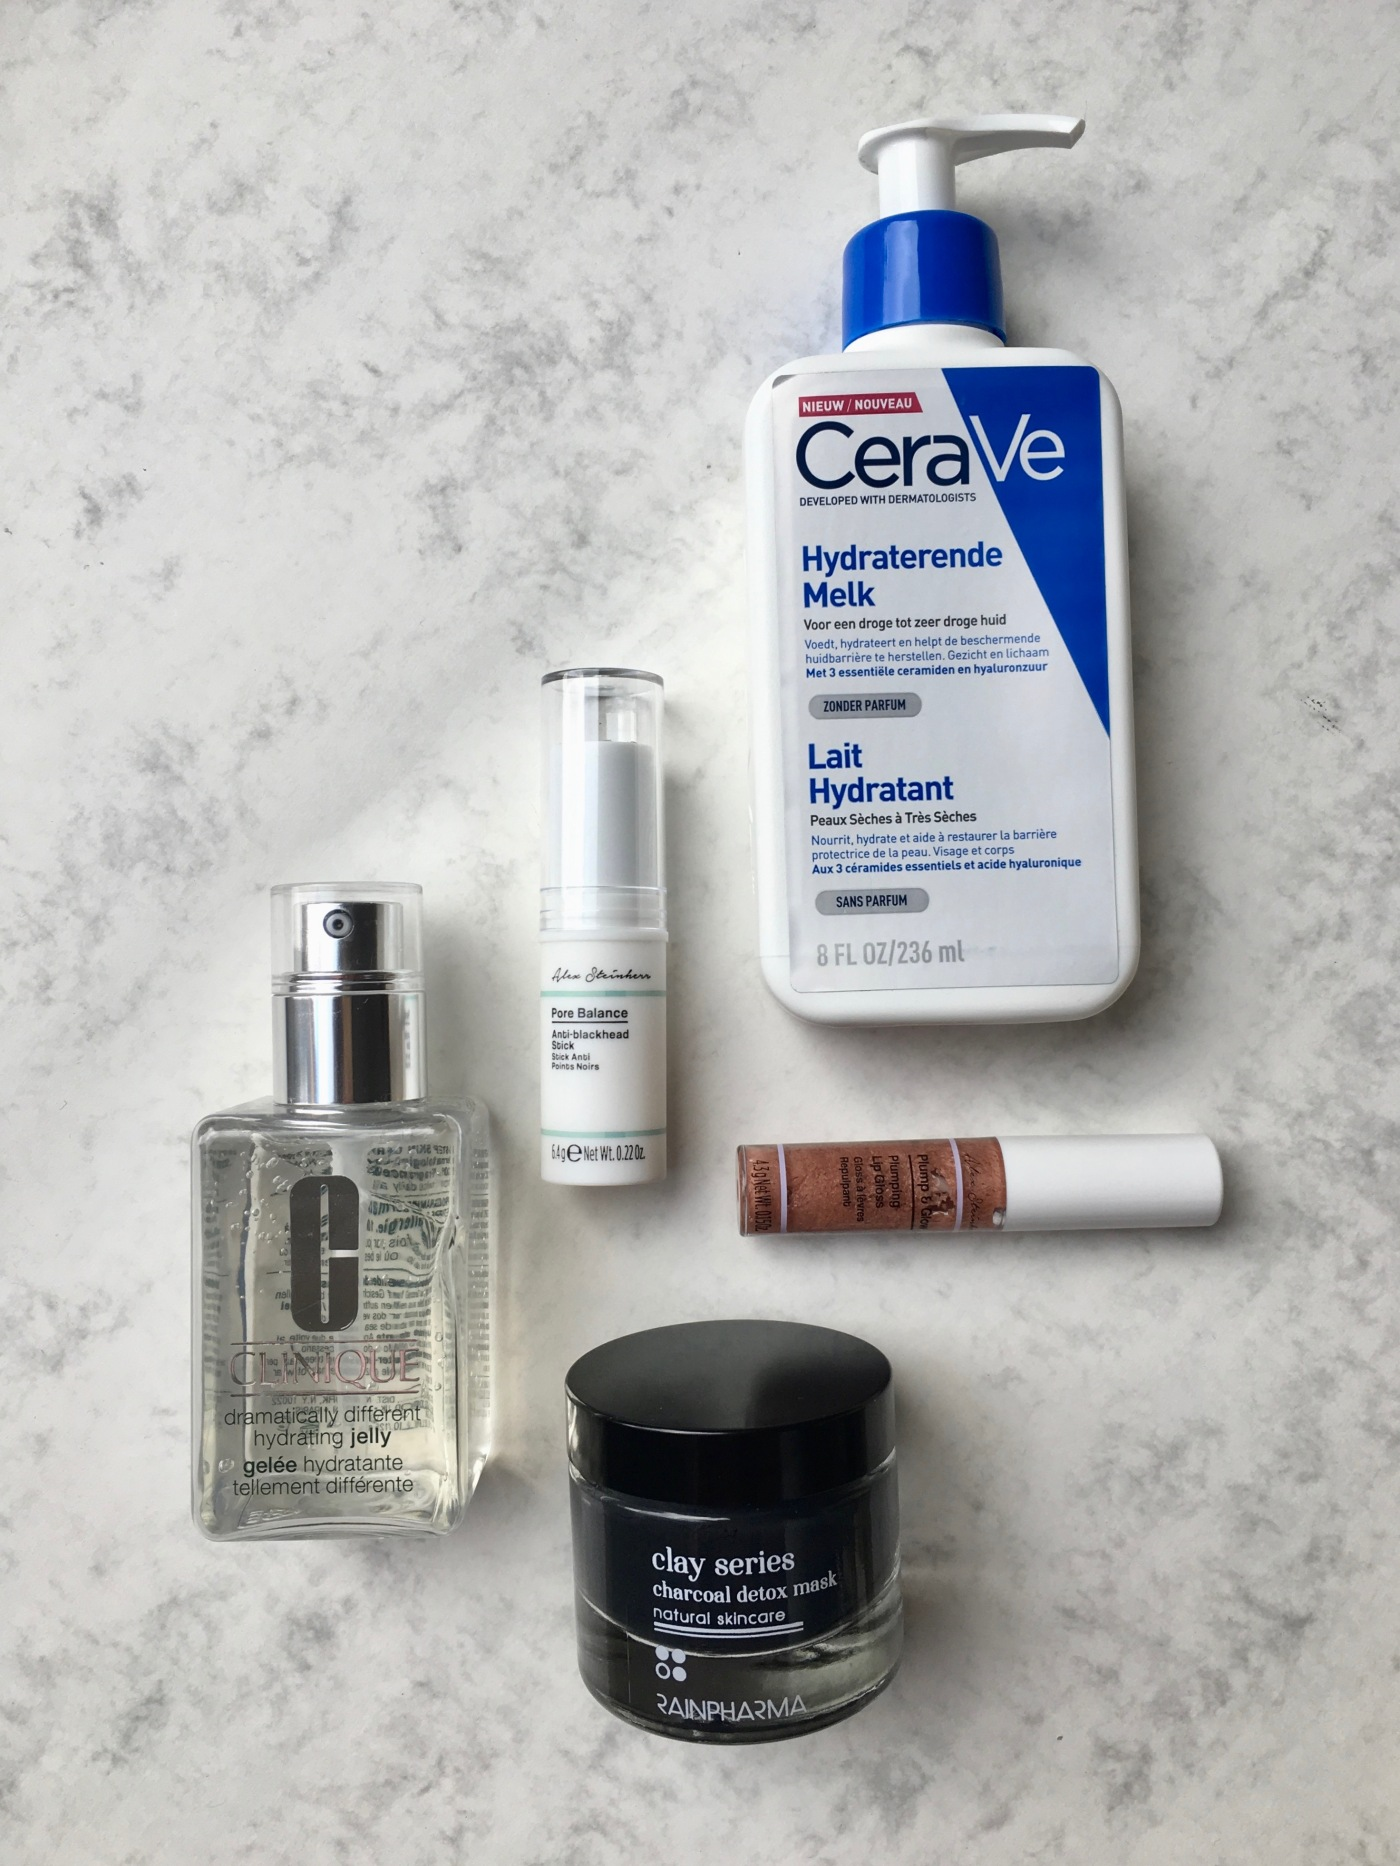 cerave Alessandra Steinherr Primark Clinique Rainpharma beauty favorites 2018